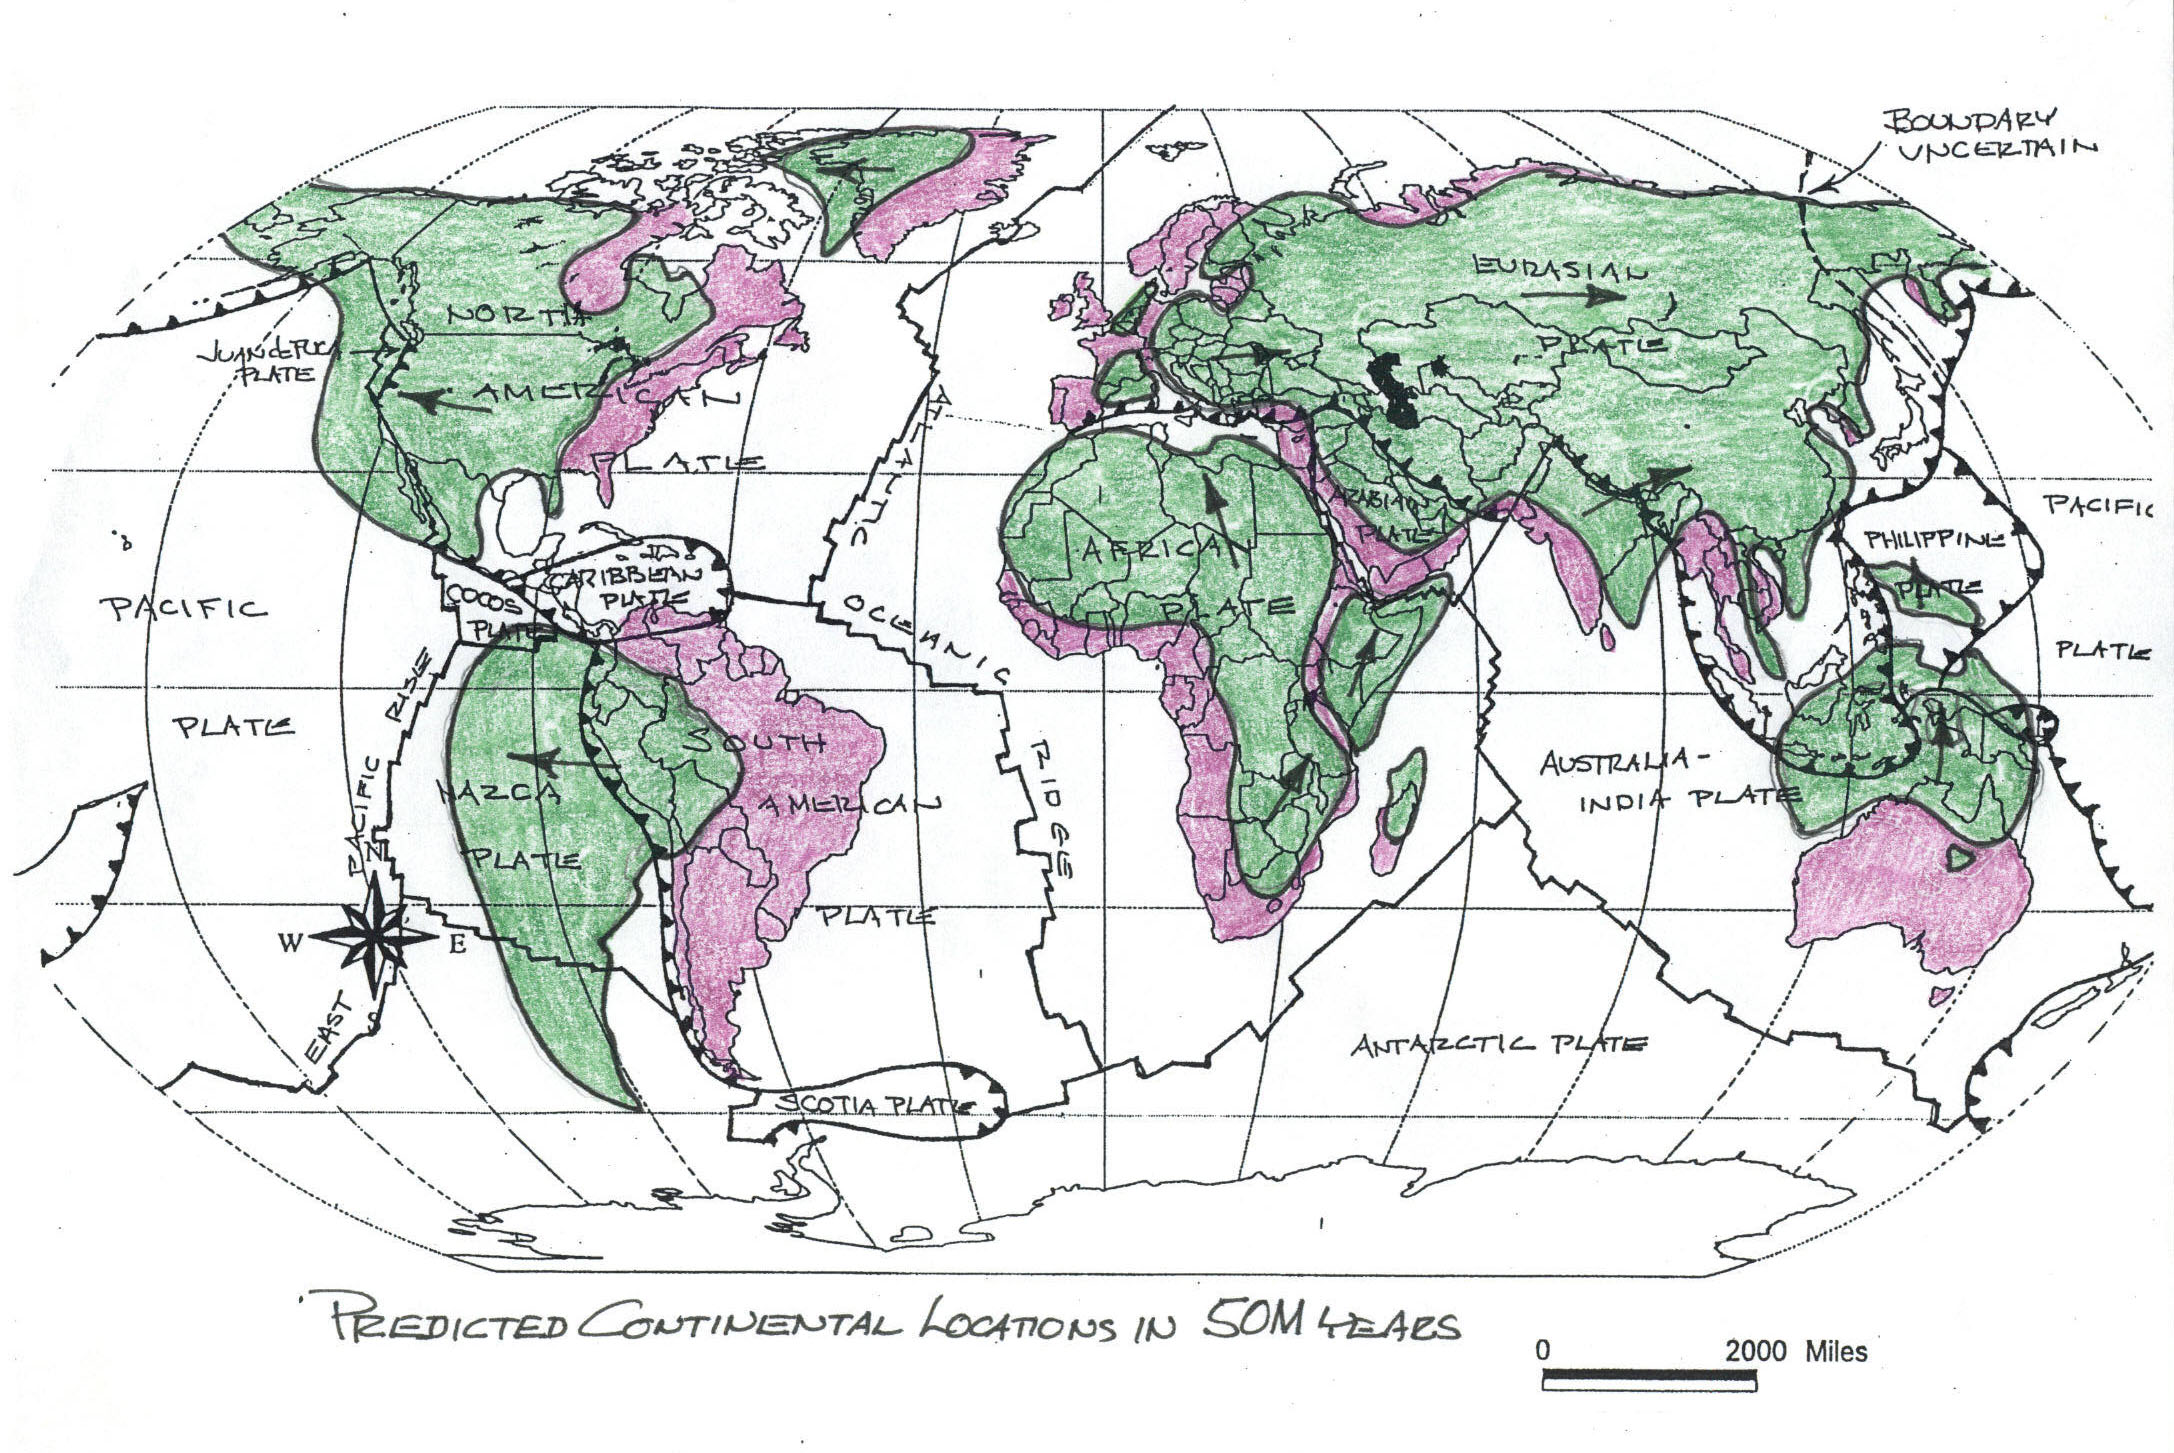 geology plate tectonics and false question Contracting earth v continental drift v  just in case any of you were under the false impression that it's only recently  continental drift v plate tectonics.